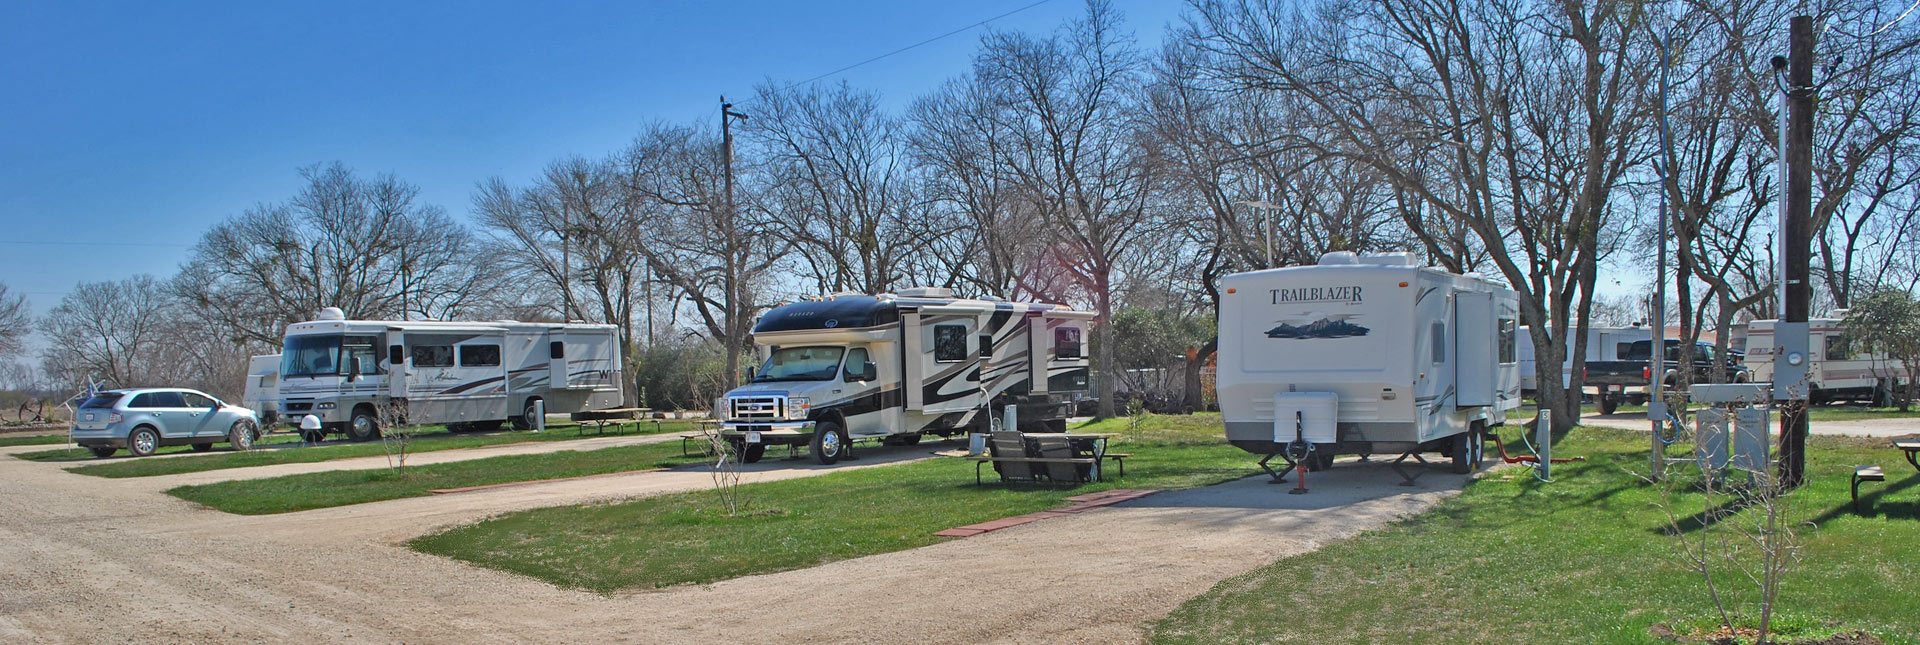 Hidden Valley Rv Park San Antonio Texas Country